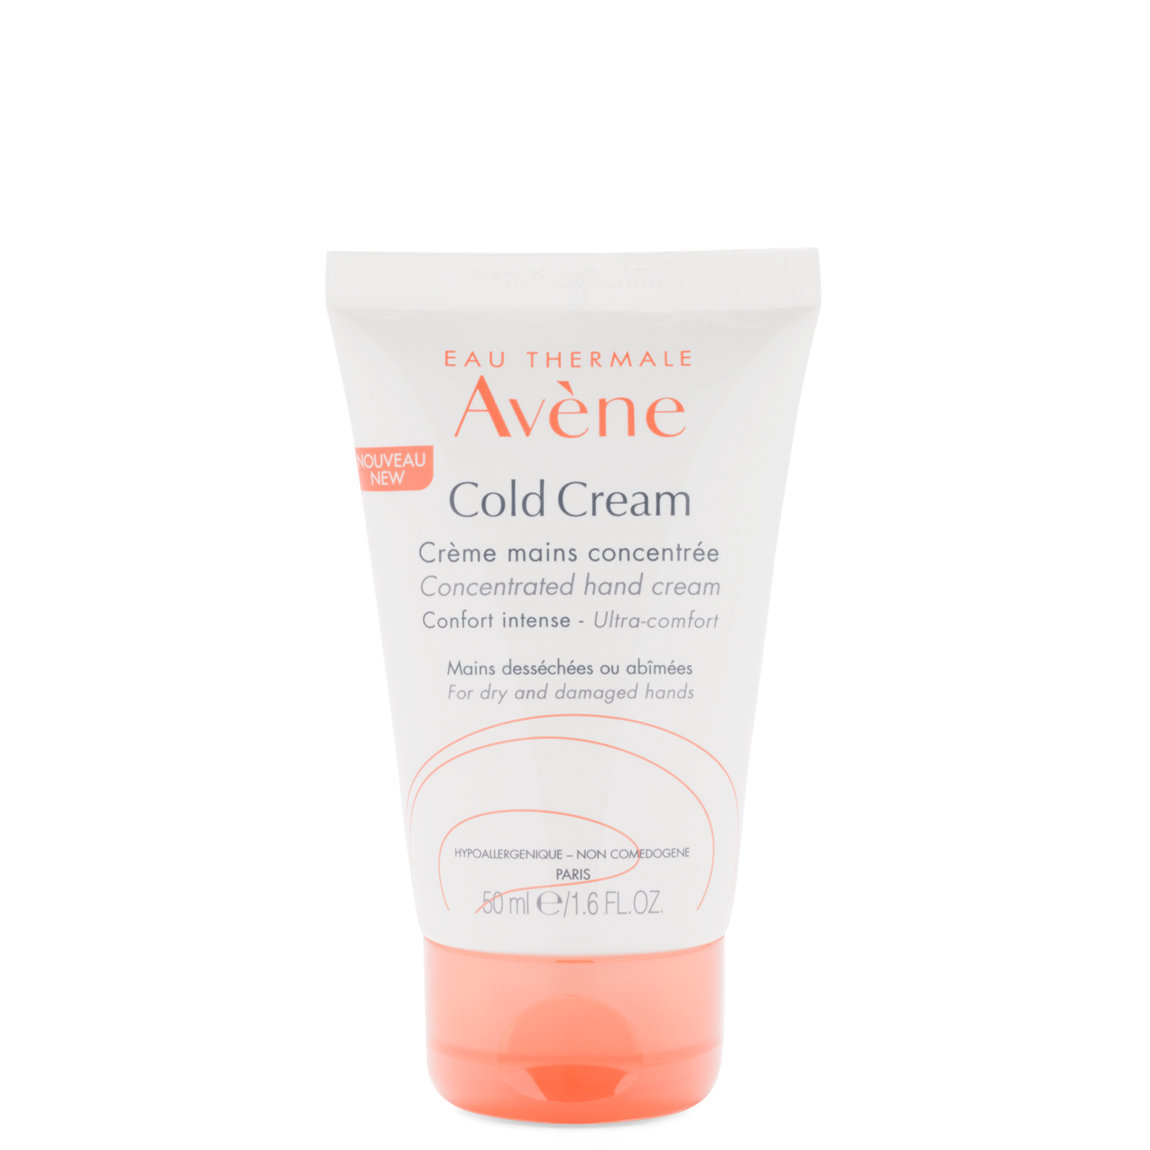 Eau Thermale Avène Cold Cream Concentrated Hand Cream product swatch.